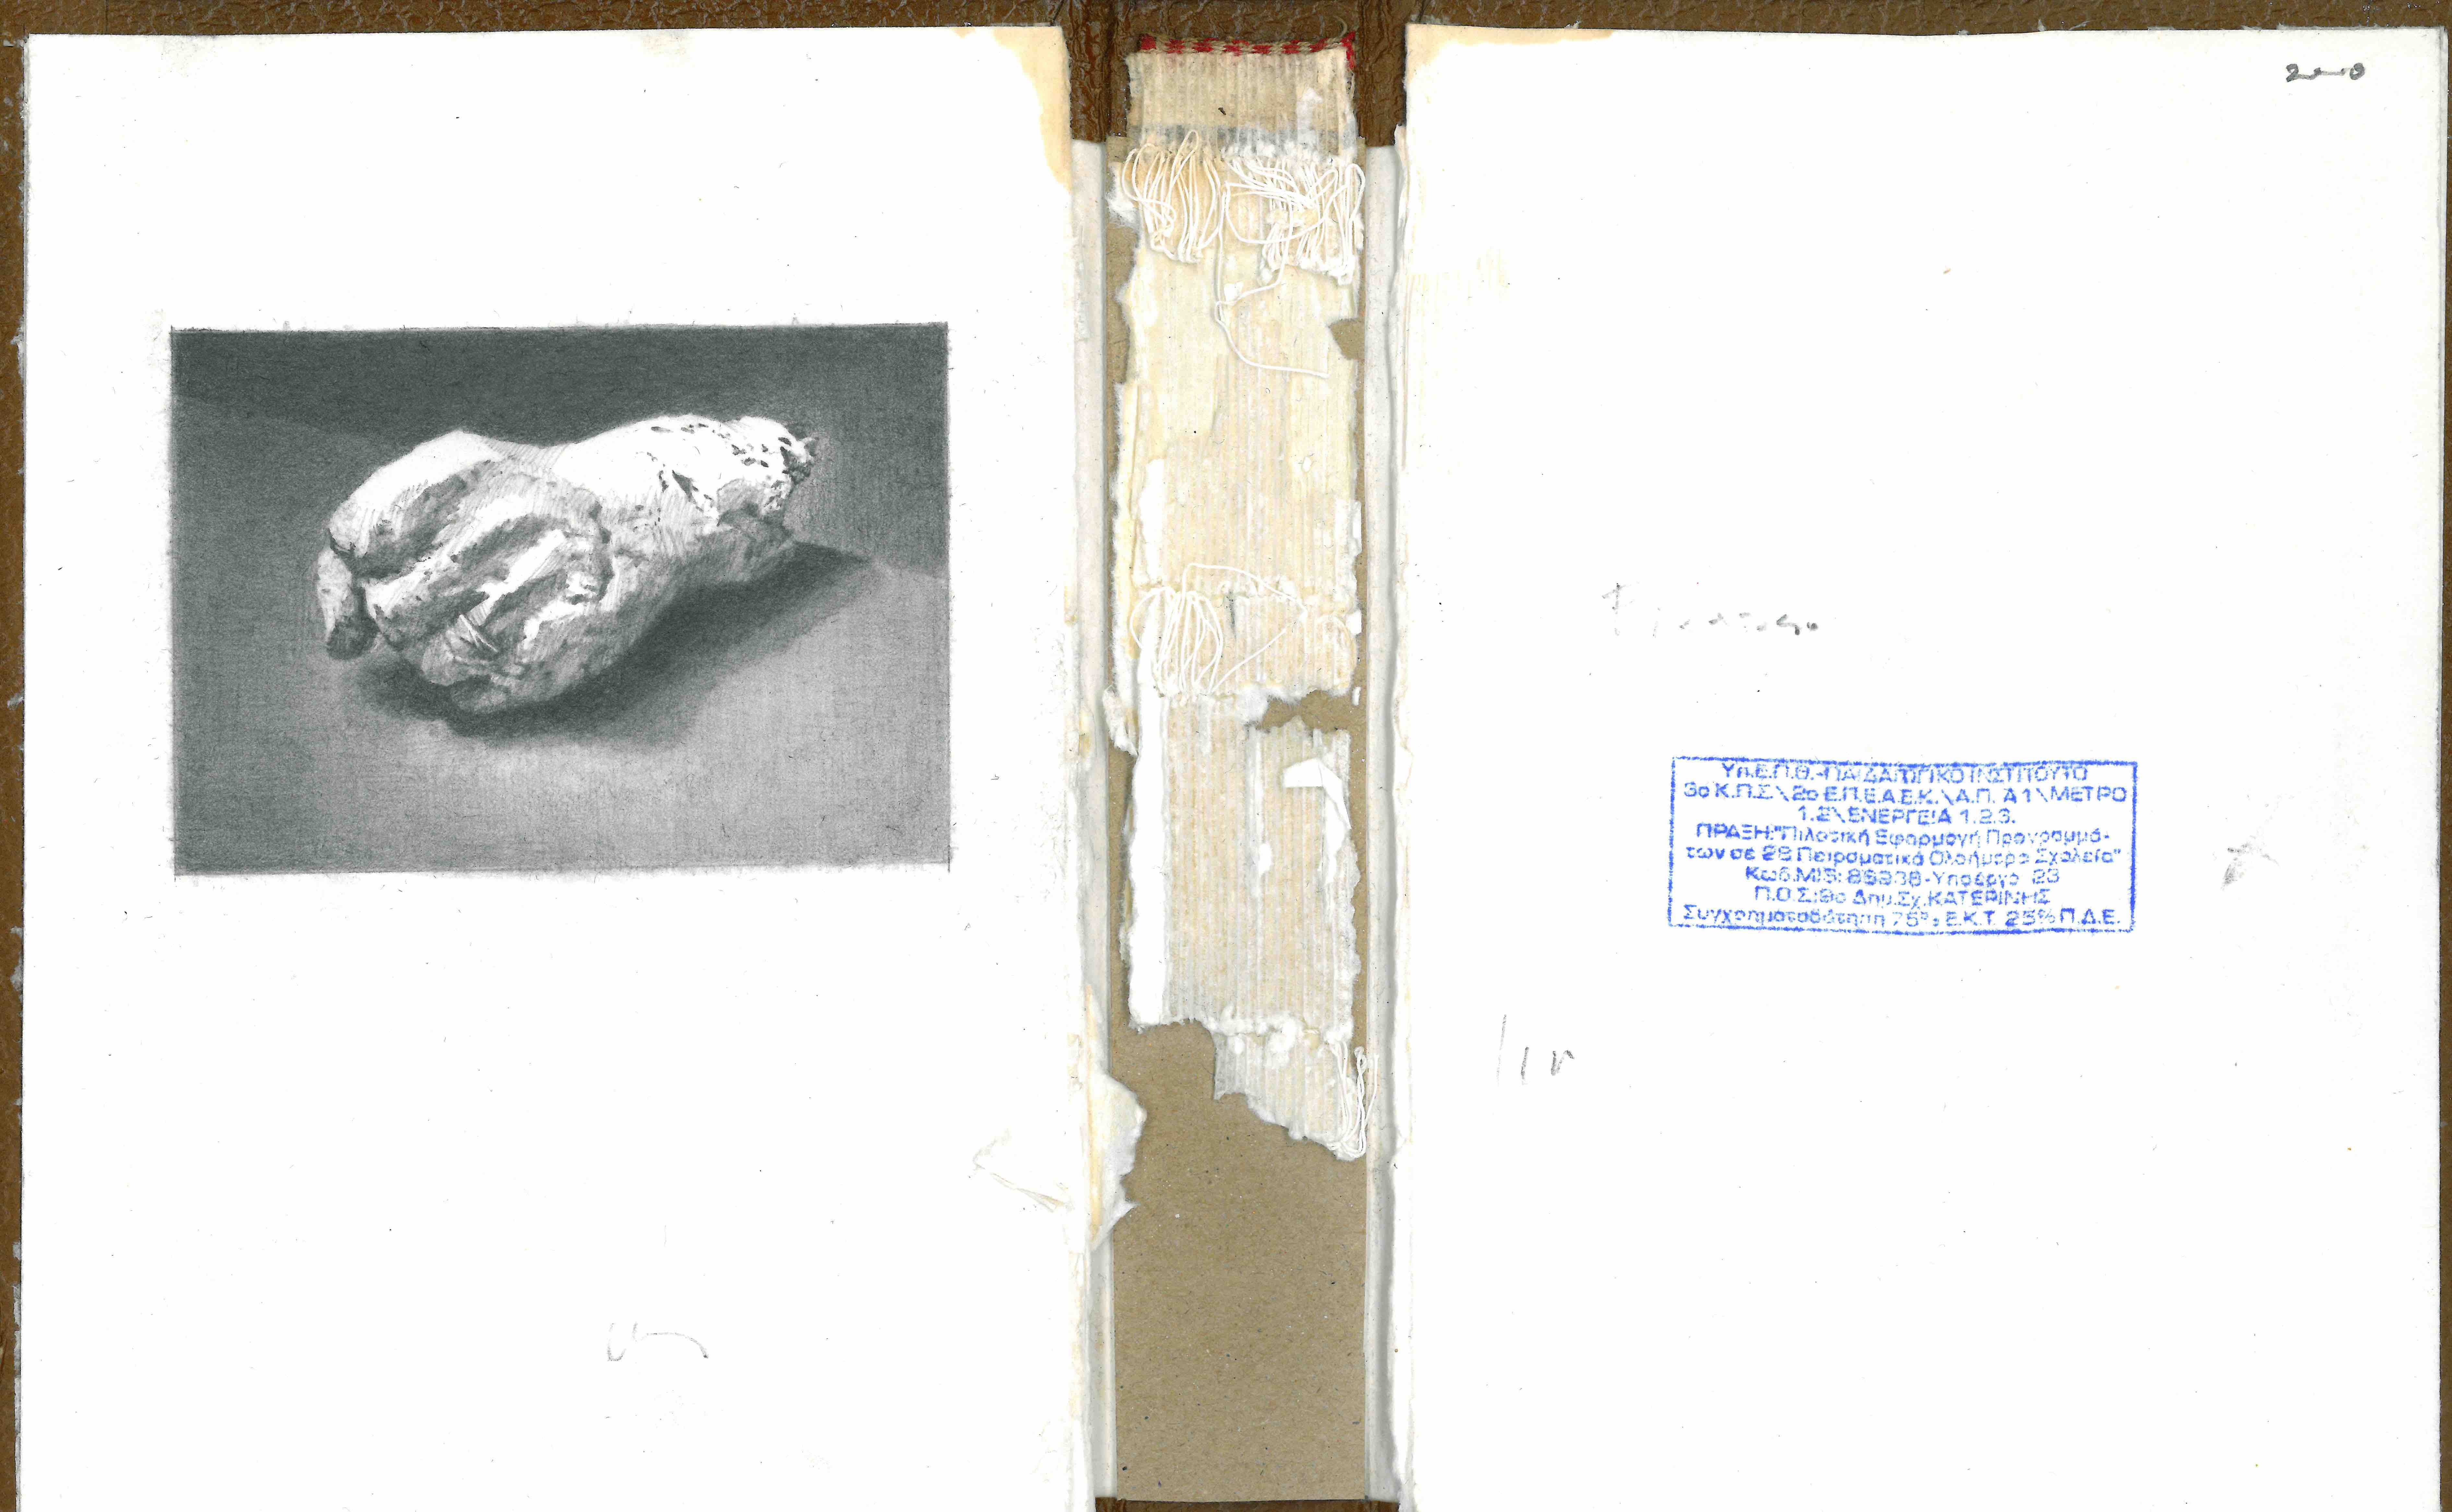 Christos Venetis - Anemic Archives Series, pencil on used book covers, 21.5 x 30 cm ca., 2015